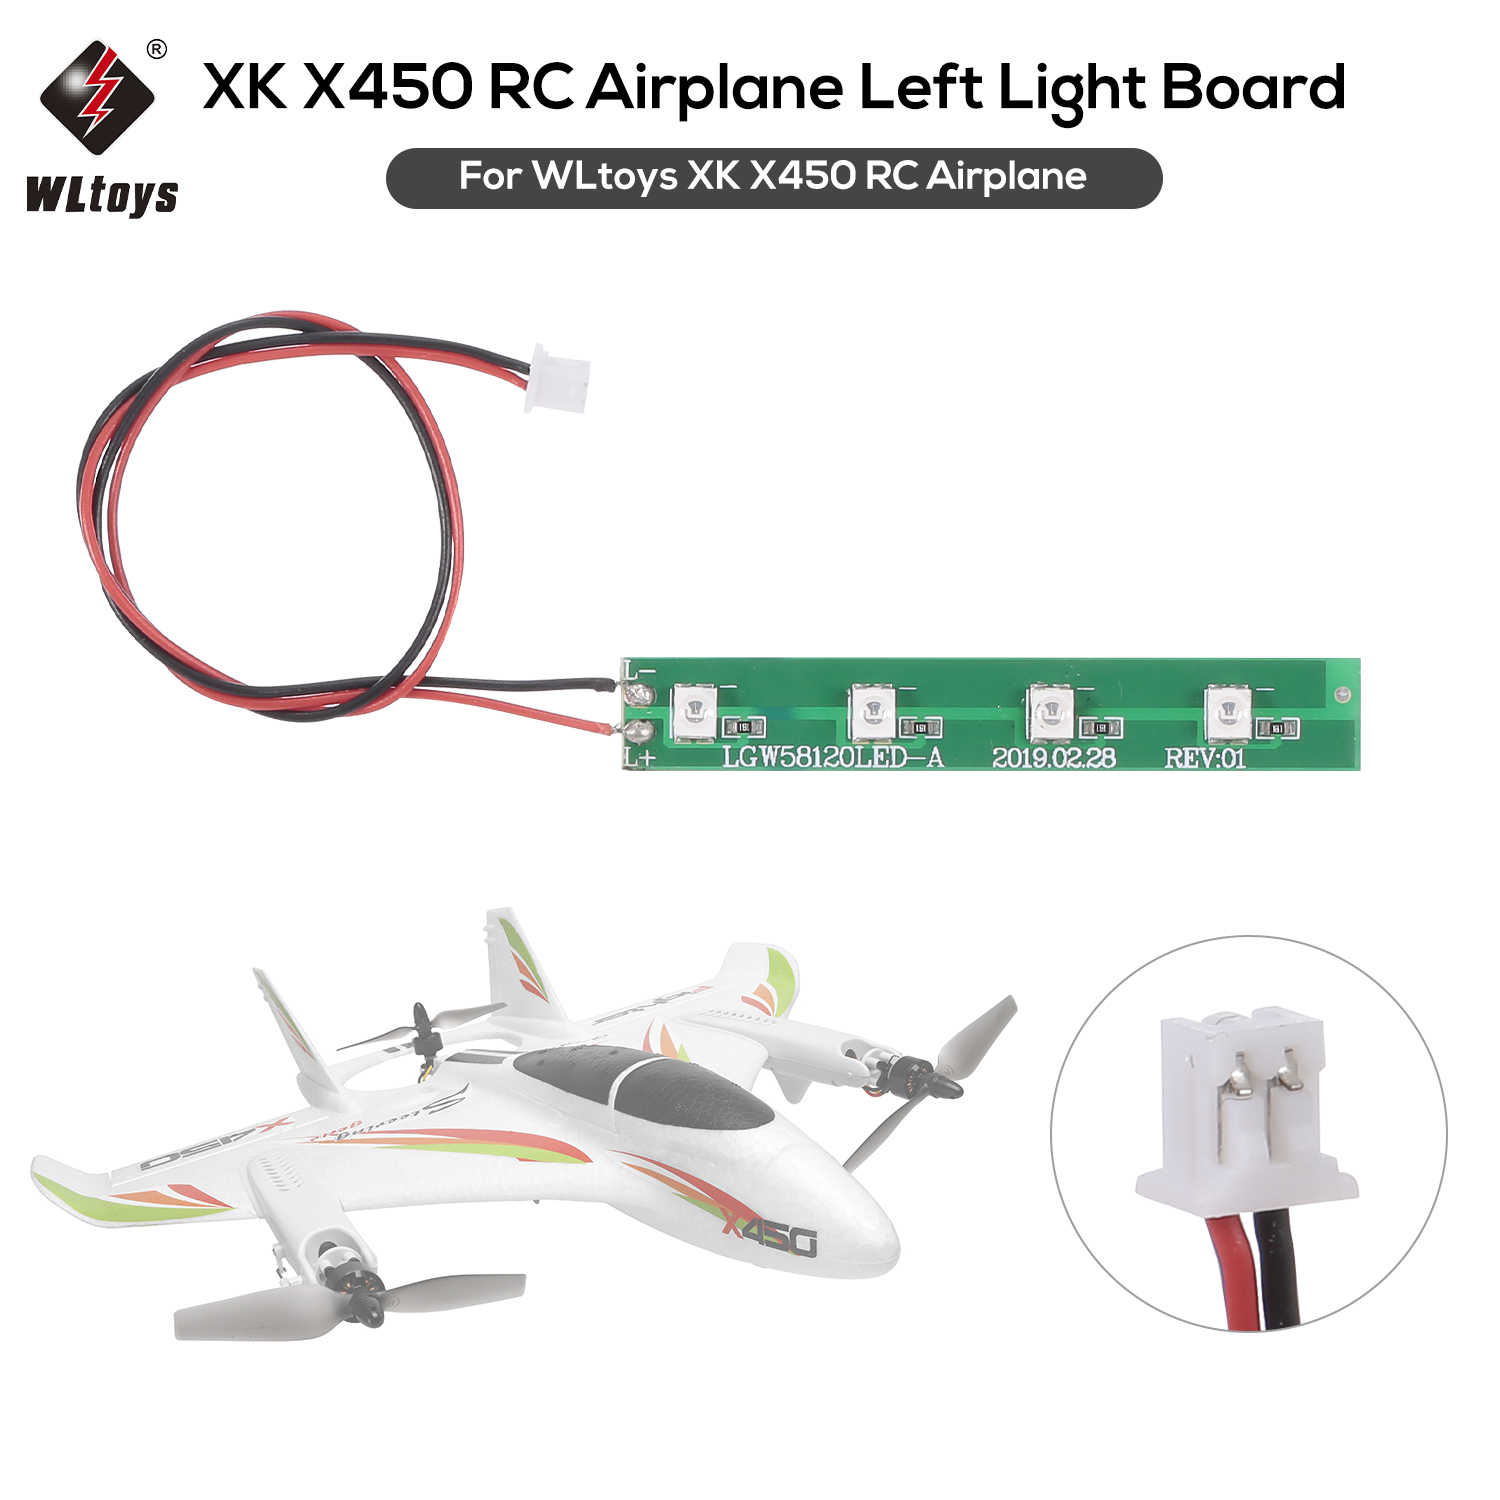 Wltoys Xk X450 Rc Vliegtuig Helicopter Vaste Vleugel Links/Rechts Licht Boord